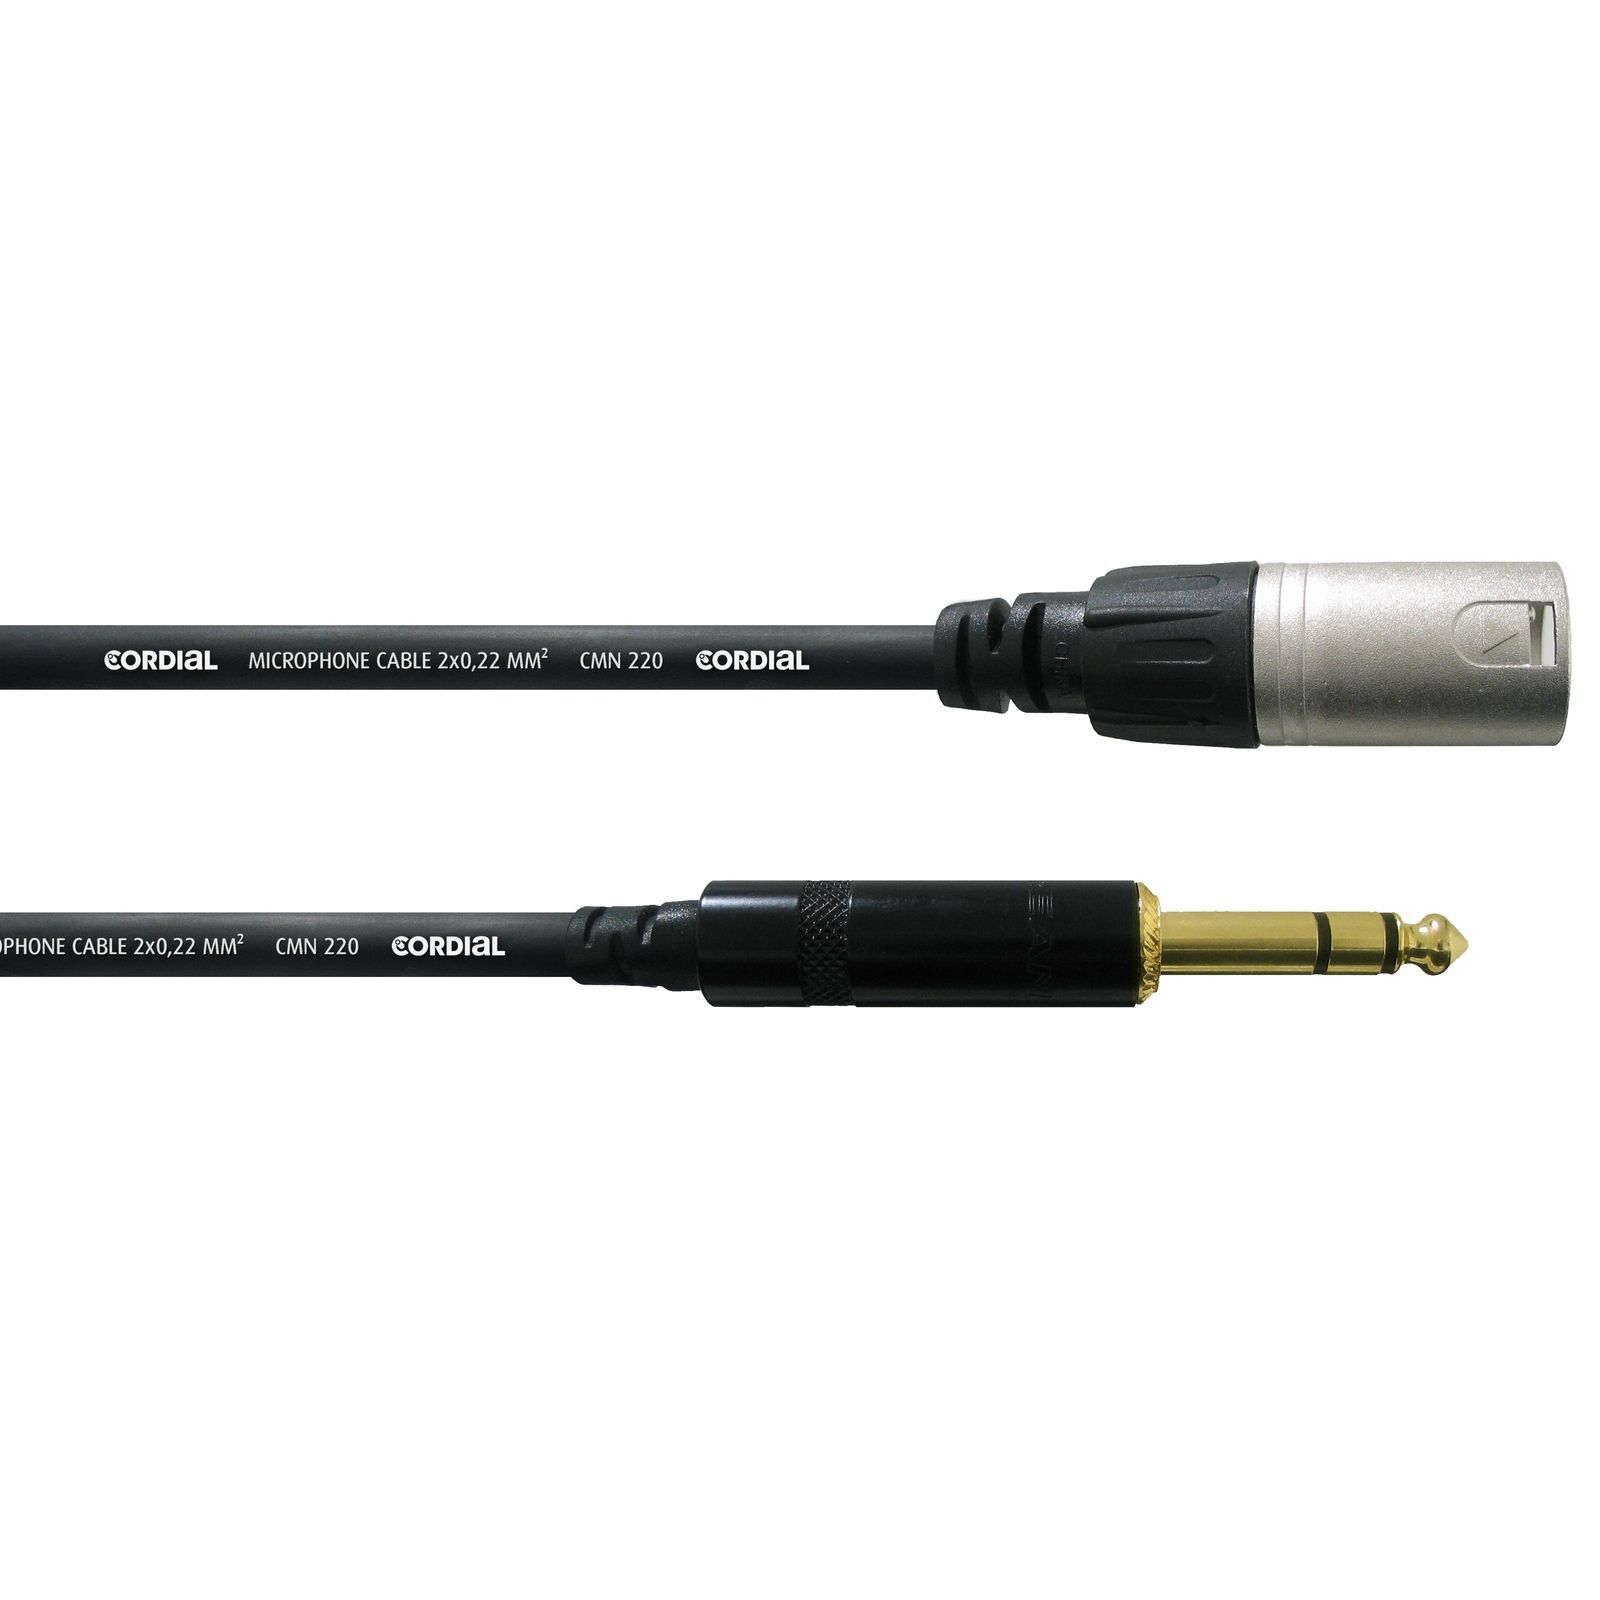 Cordial CFM 1.5 MV intro Microphone Cable XLR male - Jack stereo 1,5m Rean Produktbillede